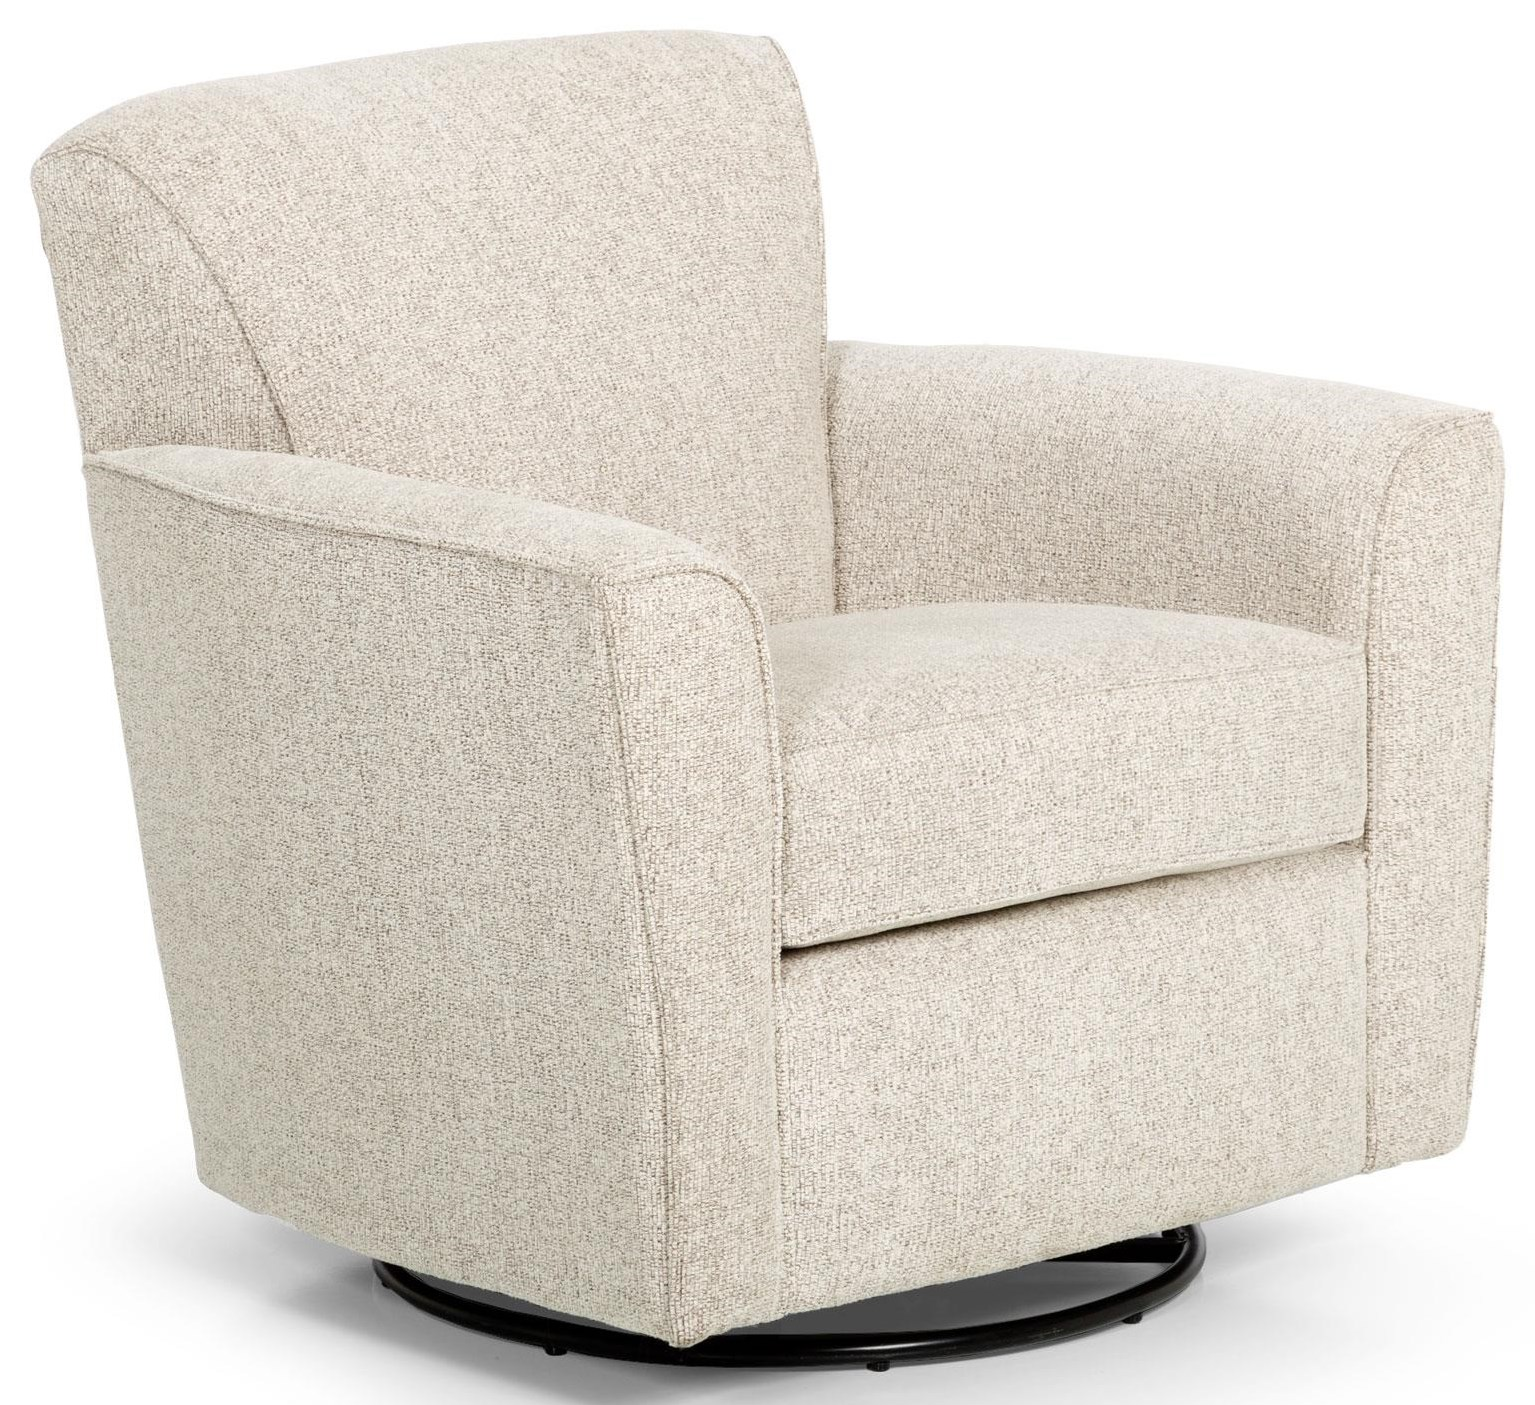 29057 Swivel Chair by Sunset Home at Sadler's Home Furnishings